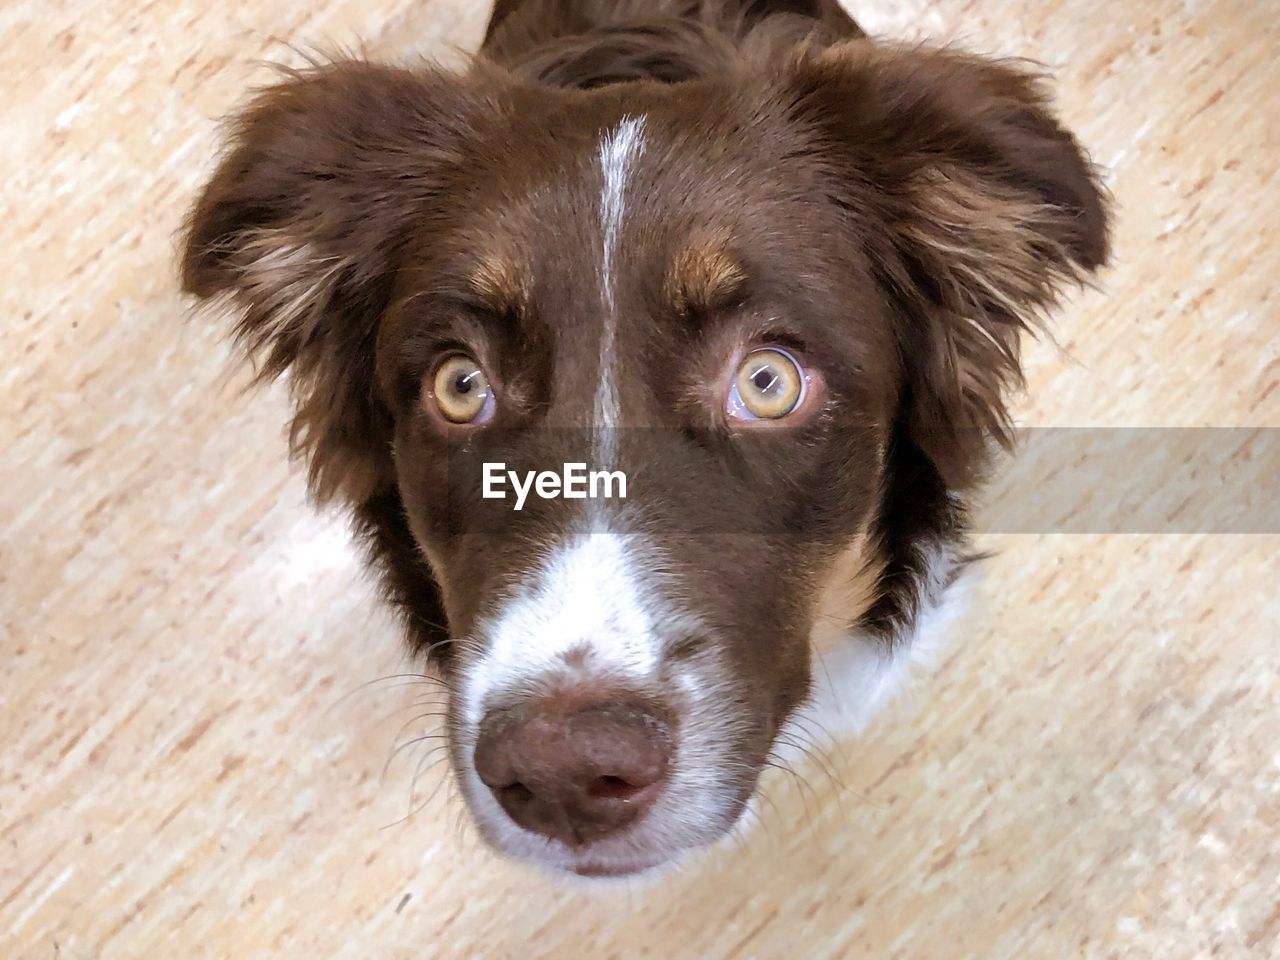 one animal, domestic, domestic animals, animal, mammal, pets, dog, canine, animal themes, portrait, looking at camera, high angle view, close-up, no people, day, wood - material, flooring, indoors, animal body part, wood, animal head, border collie, parquet floor, waiting, animal eye